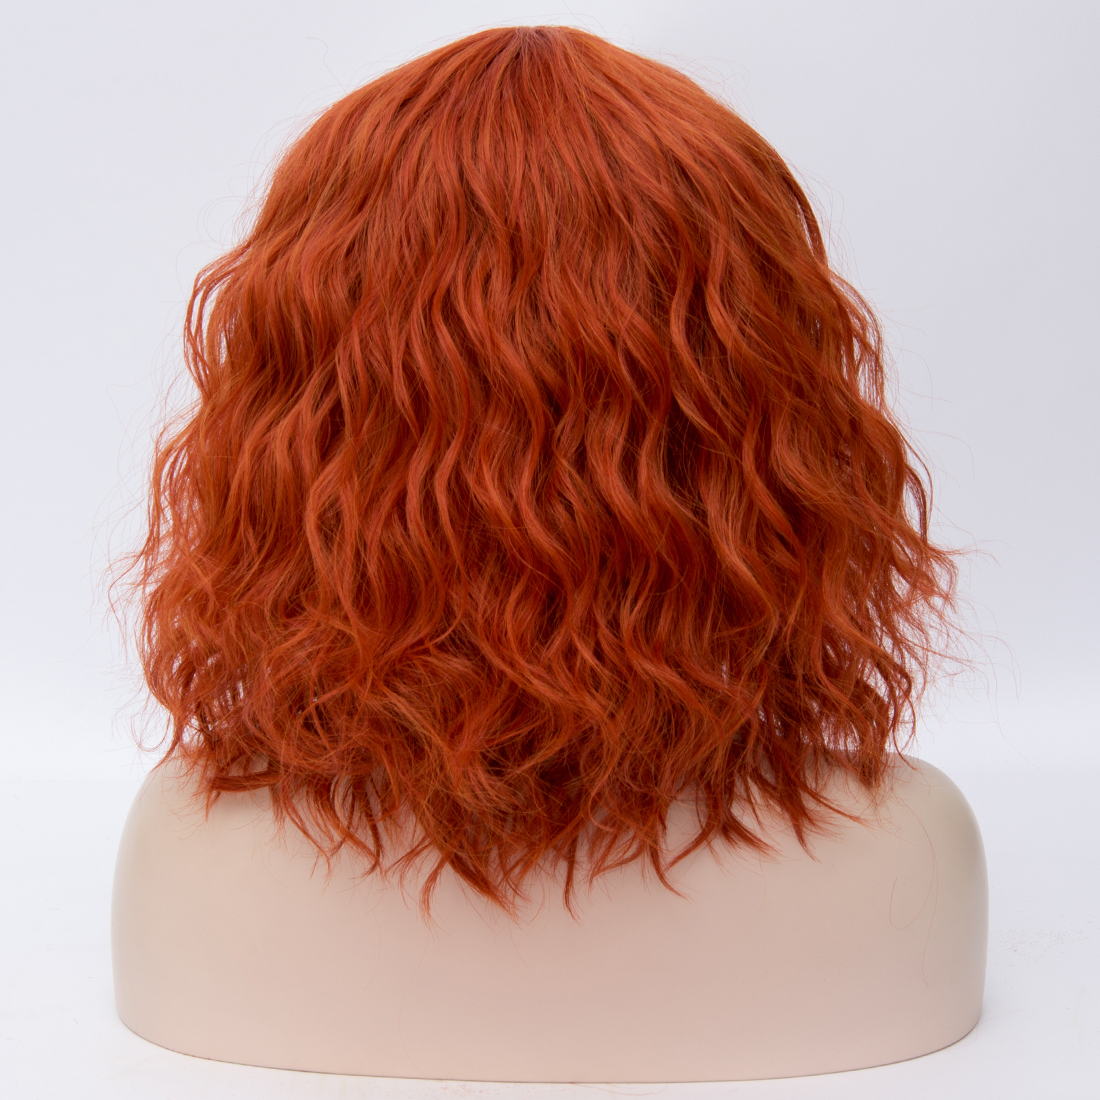 He067b7d1cf9b438ba12d7ba6859c1477b - Similler Short Synthetic Wig for Women Cosplay Curly Hair Heat Resistance Ombre Color Blue Purple Pink Green Orange Two Tones